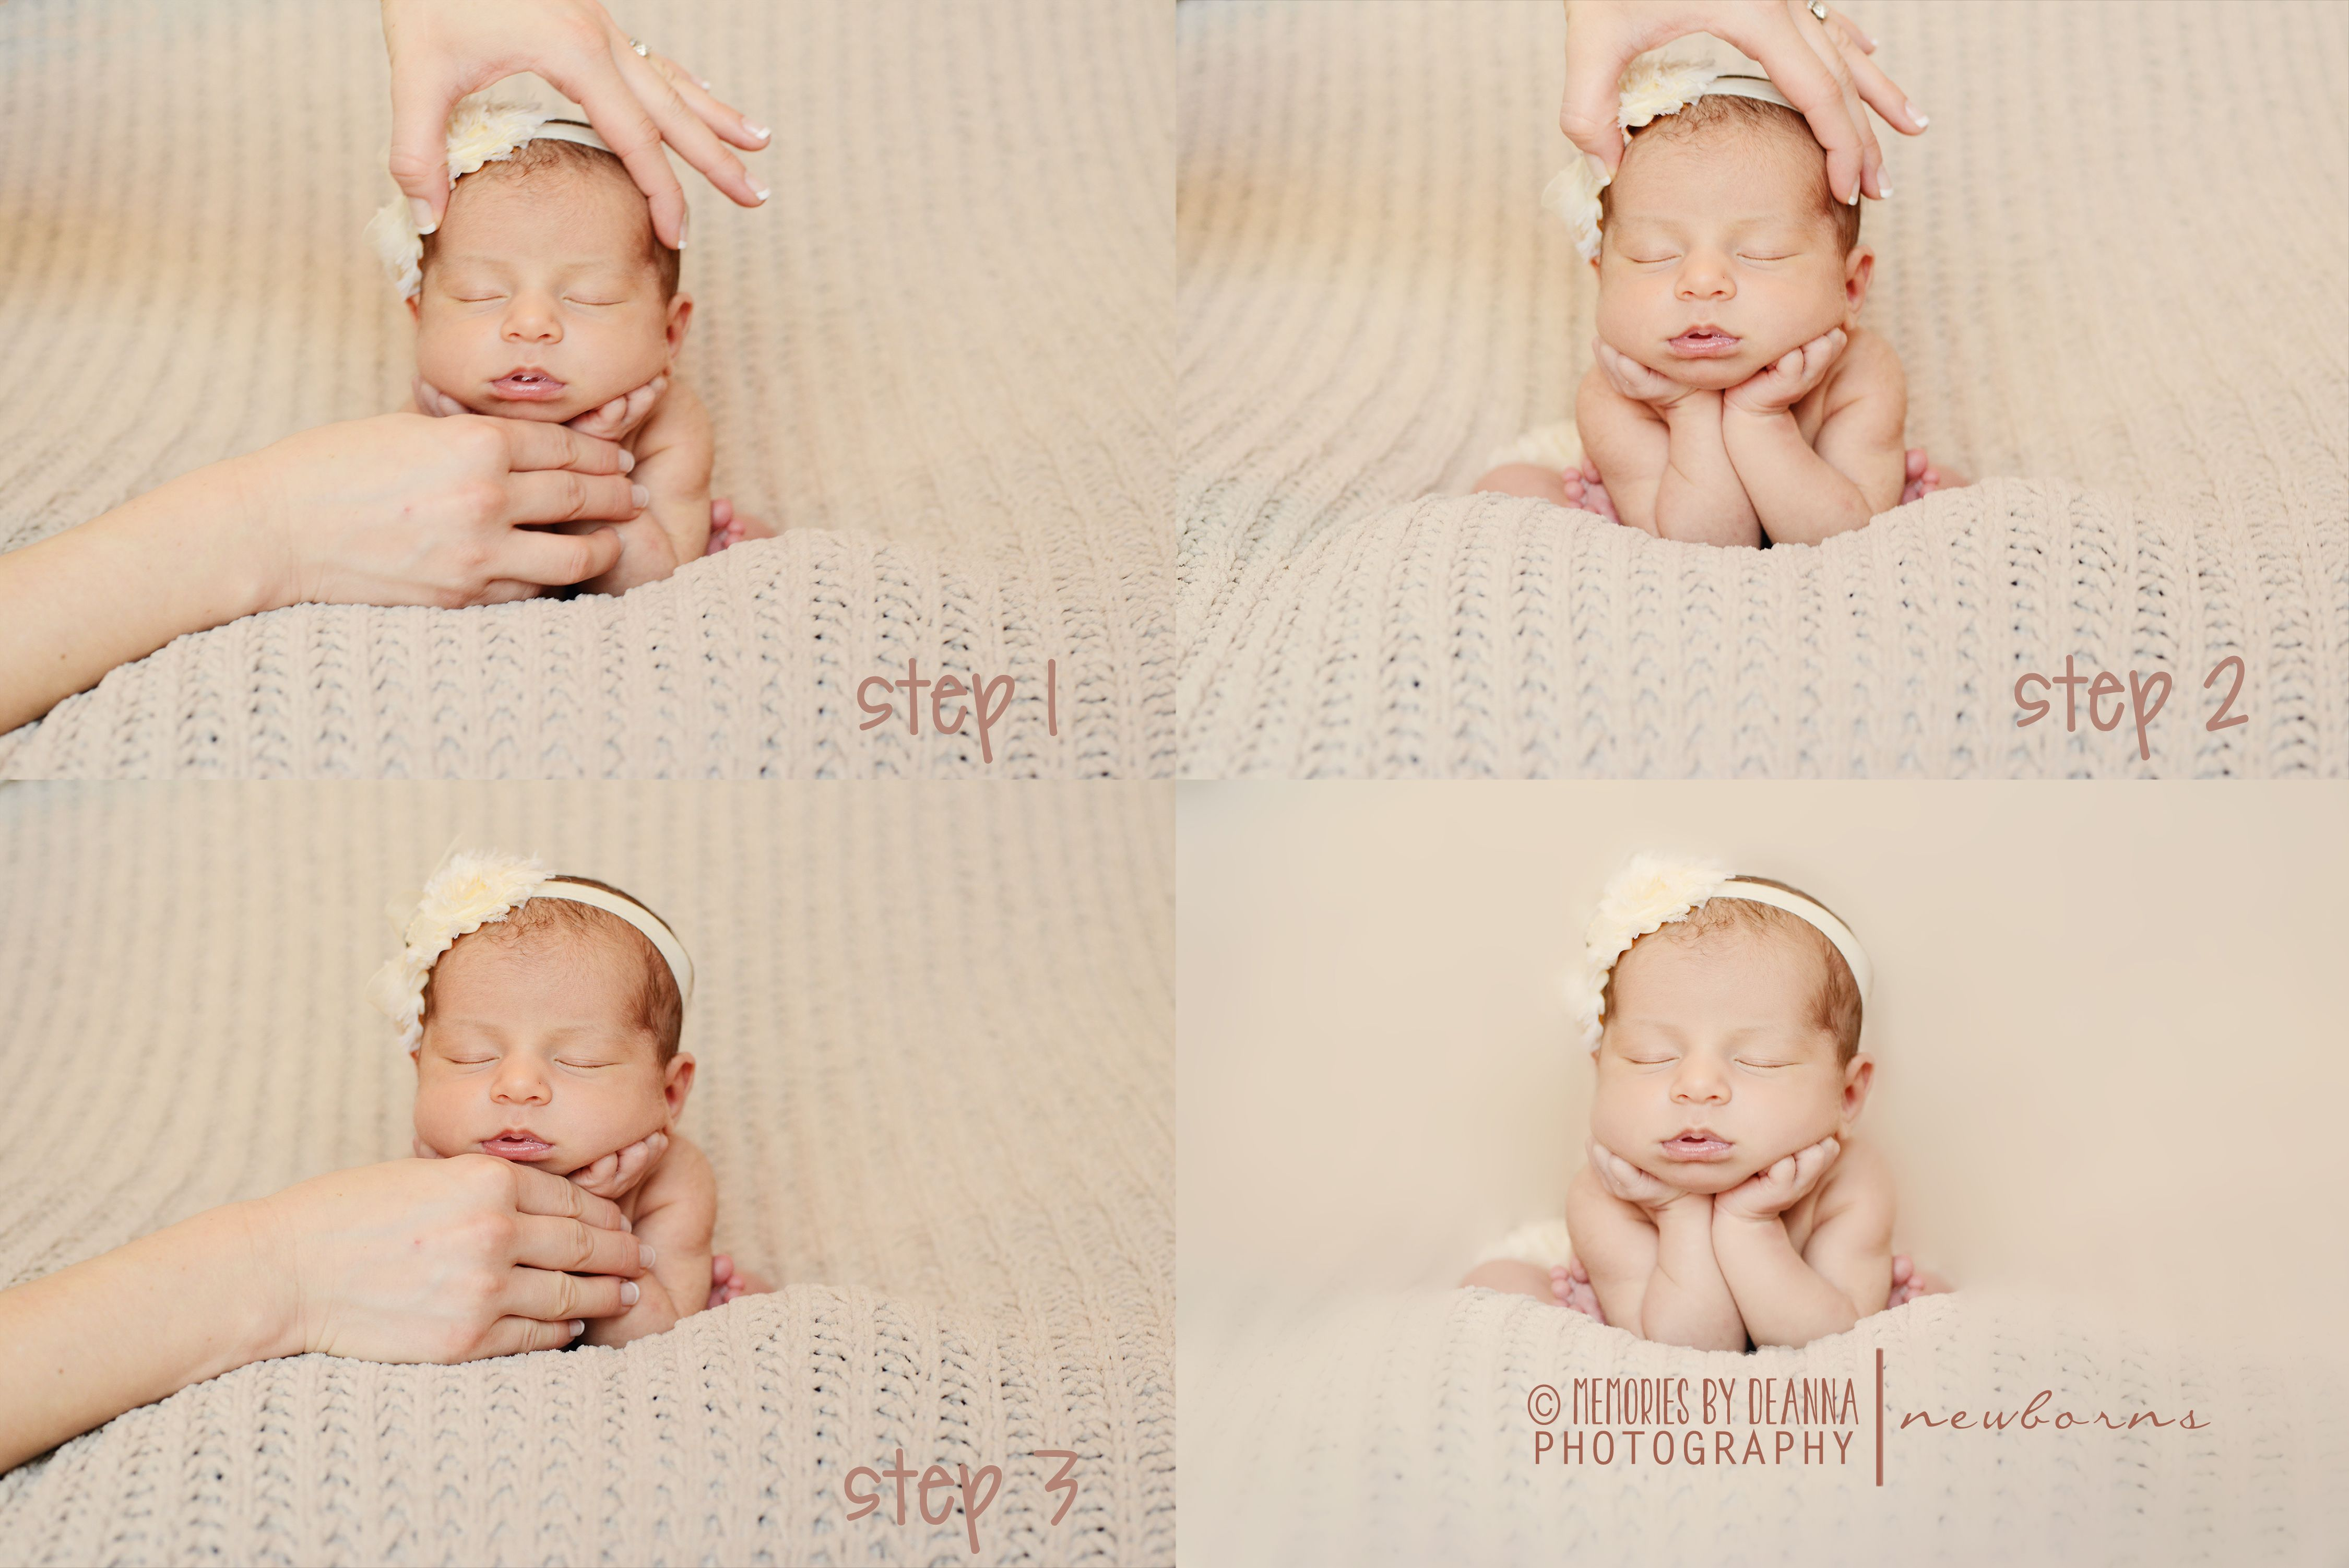 Froggy pose step by step images newborn posing newborn baby photography newborn photo props